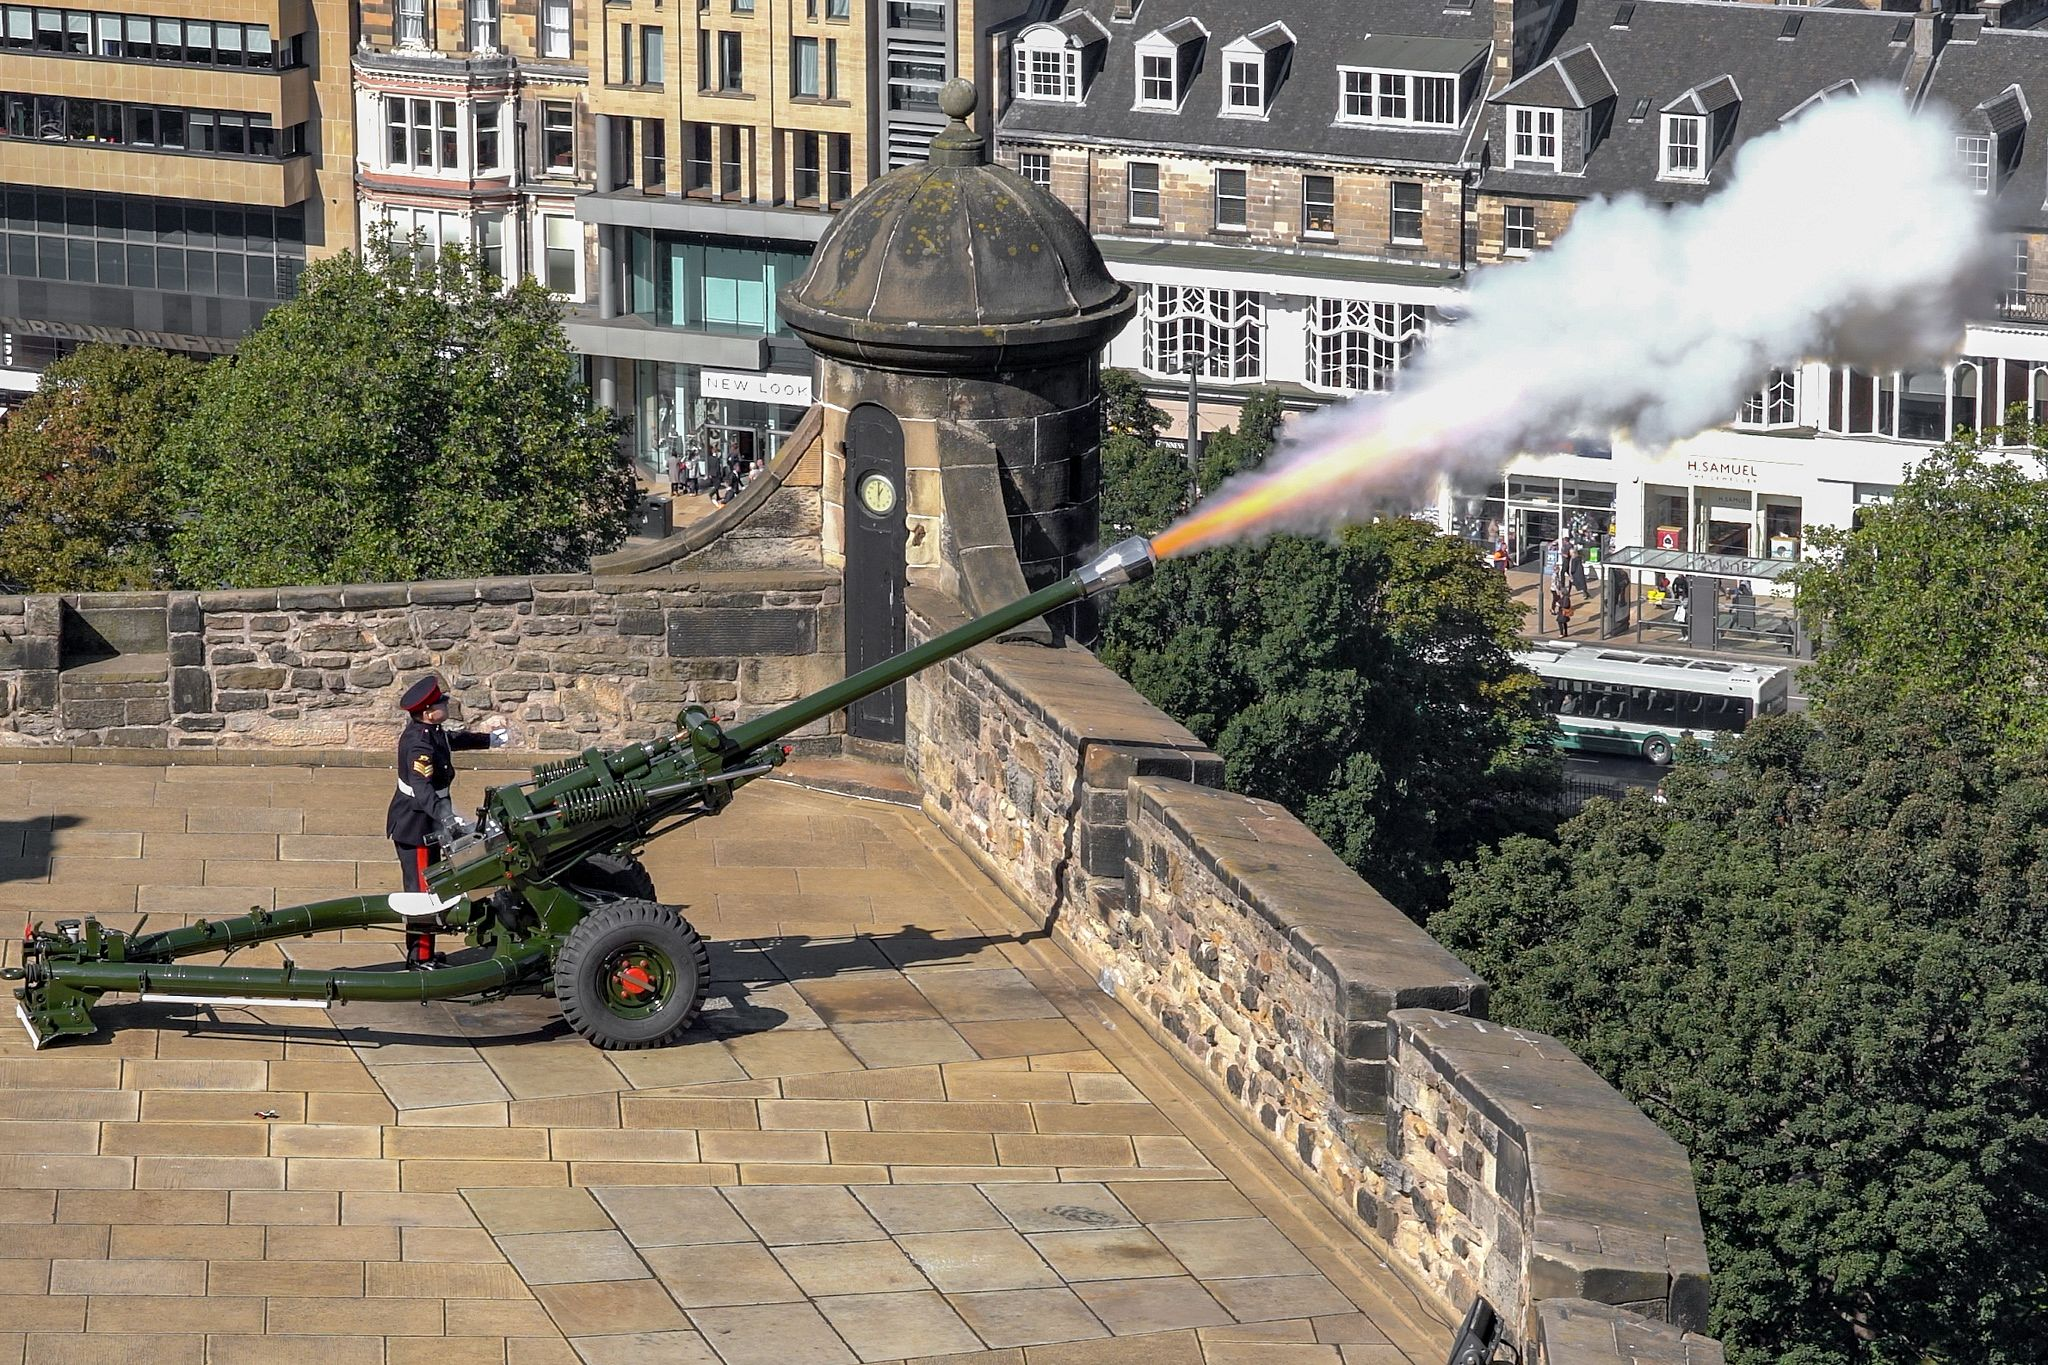 Edinburgh Castle's One O'Clock Gun